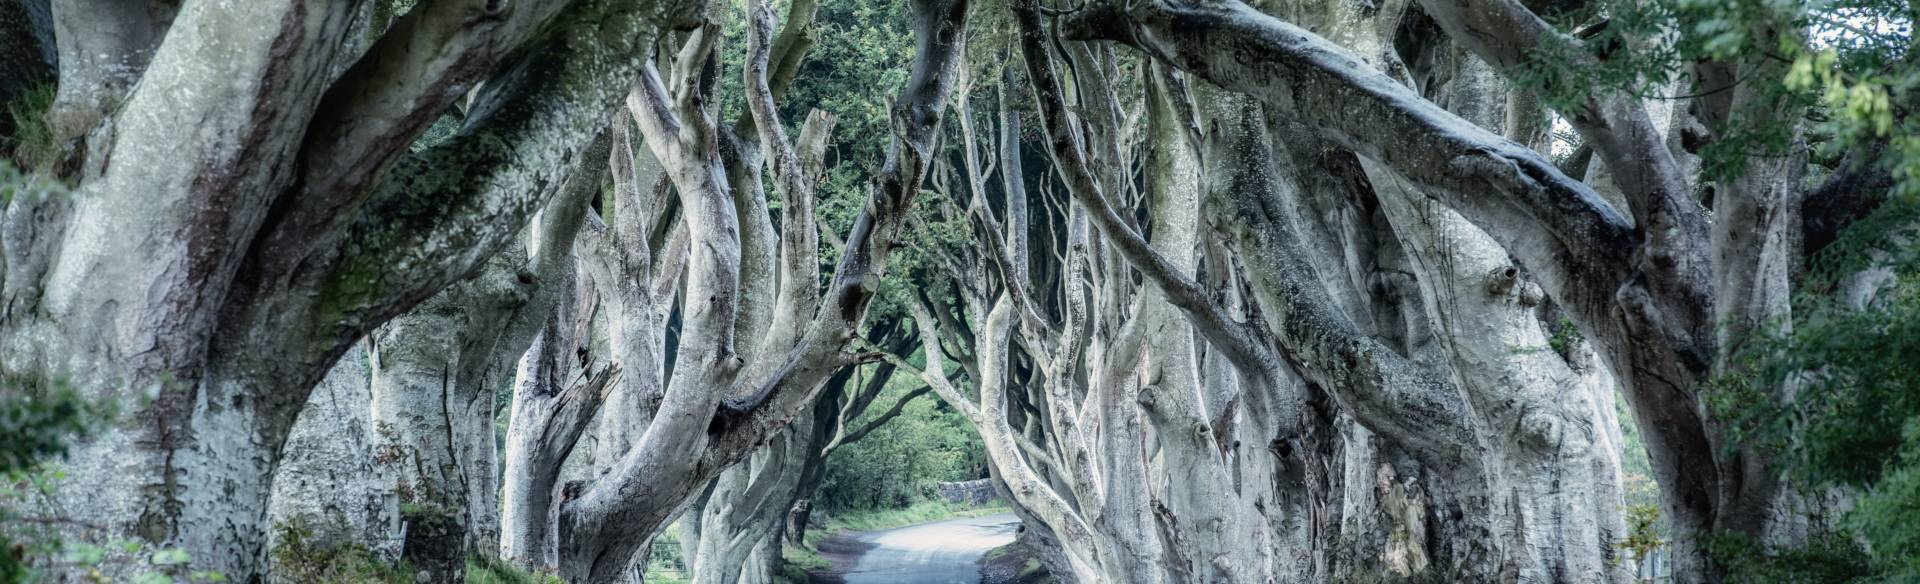 Where are the best Game of Thrones locations in Northern Ireland?